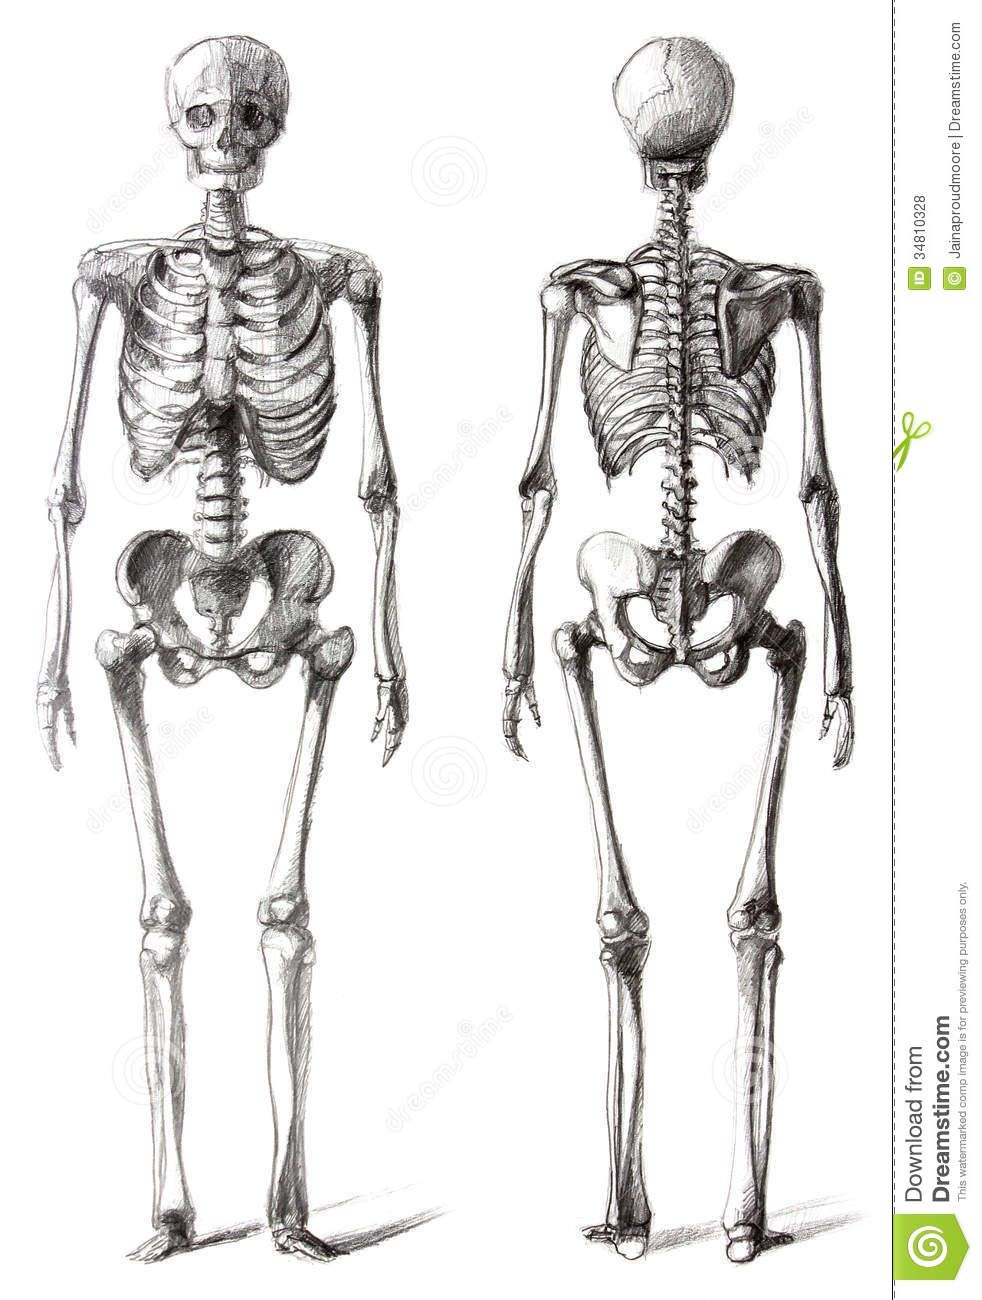 Drawing Skeleton - Download From Over 35 Million High